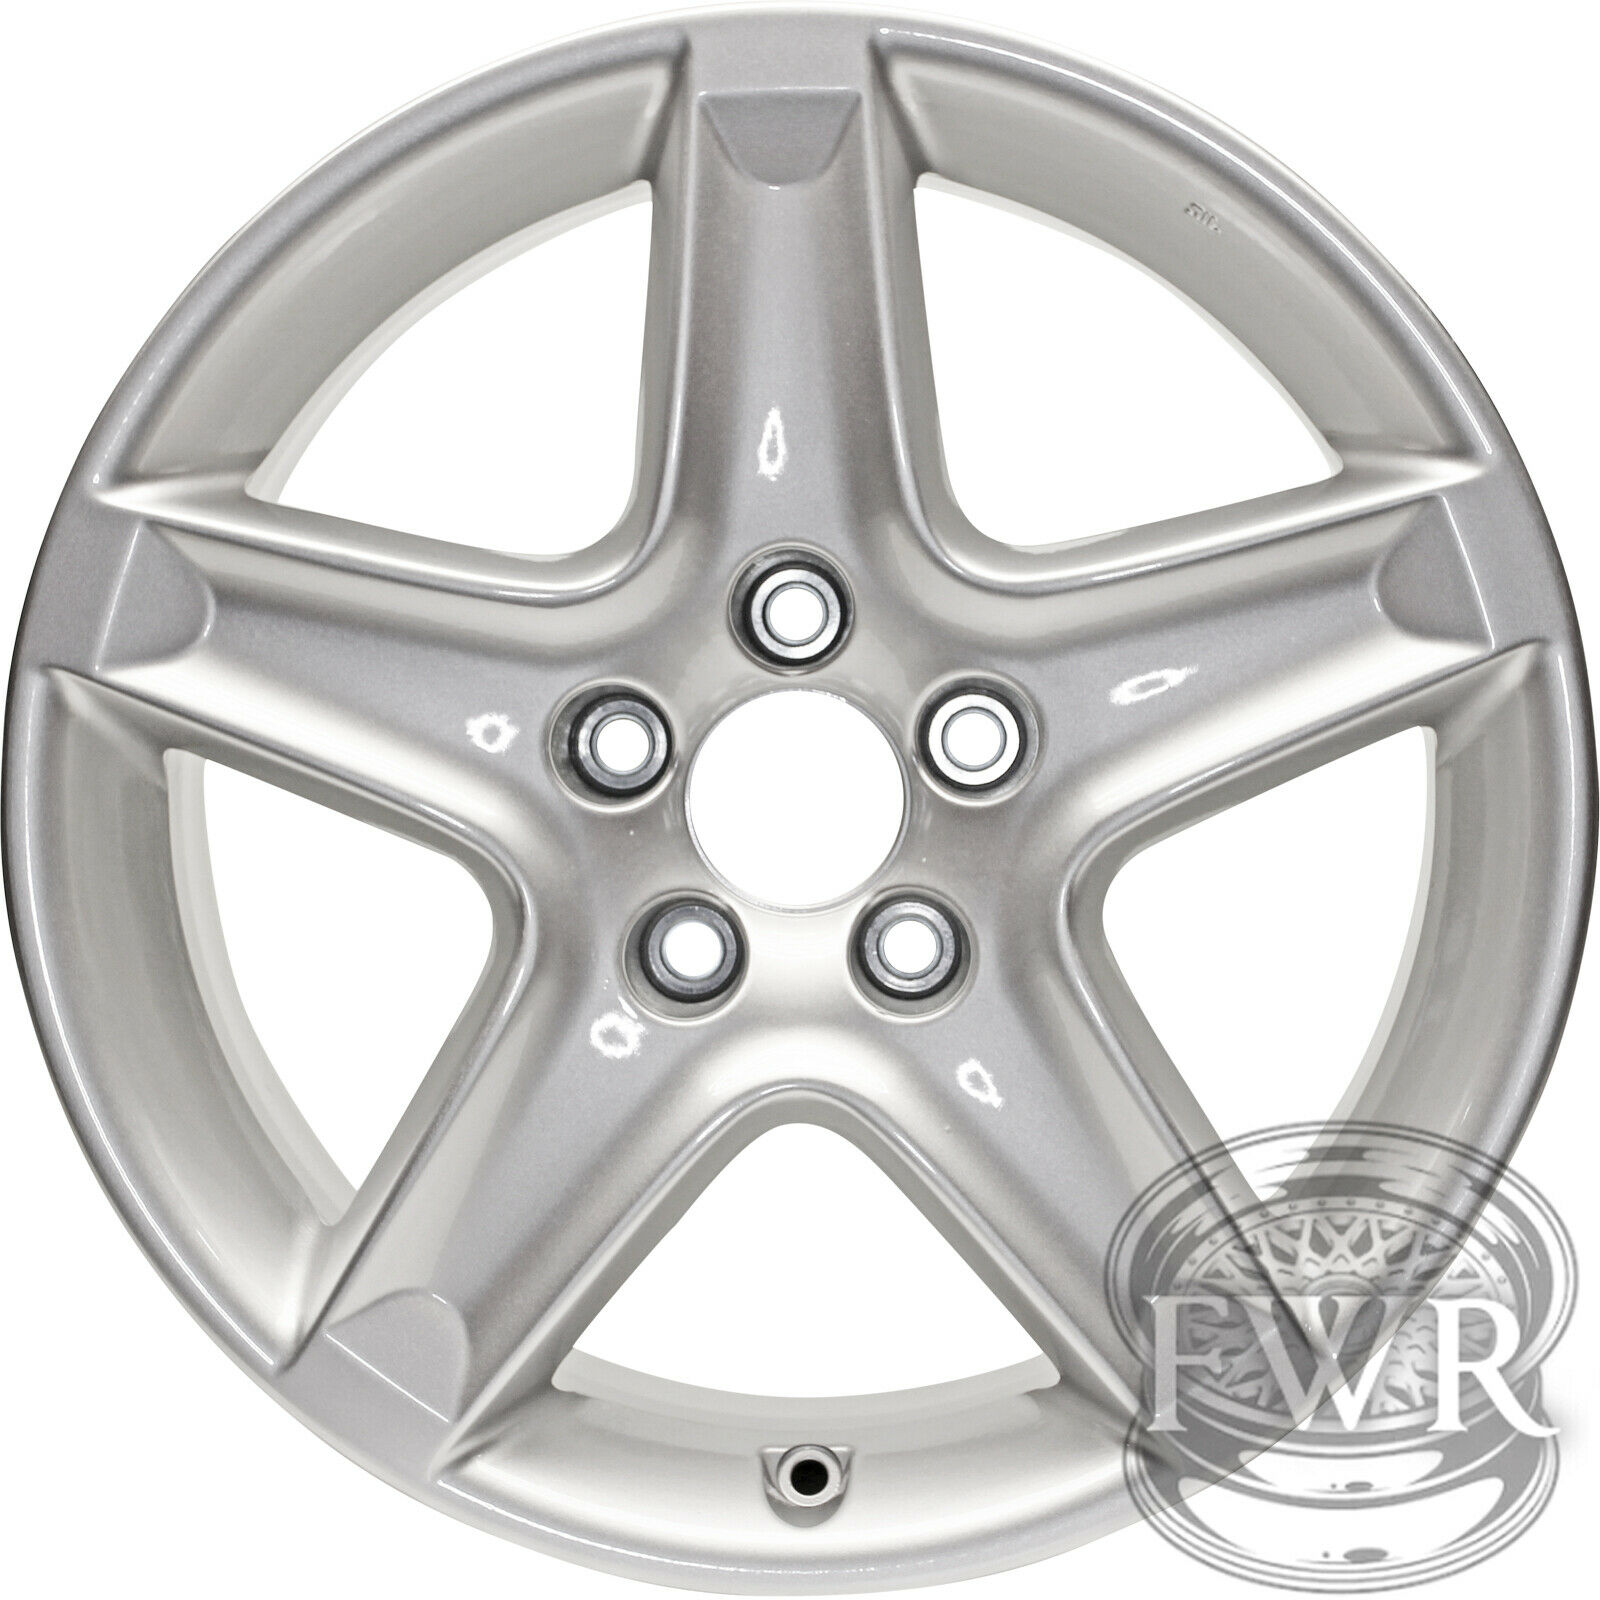 "New 17"" Replacement Alloy Wheel Rim For 2004 2005 Acura TL"